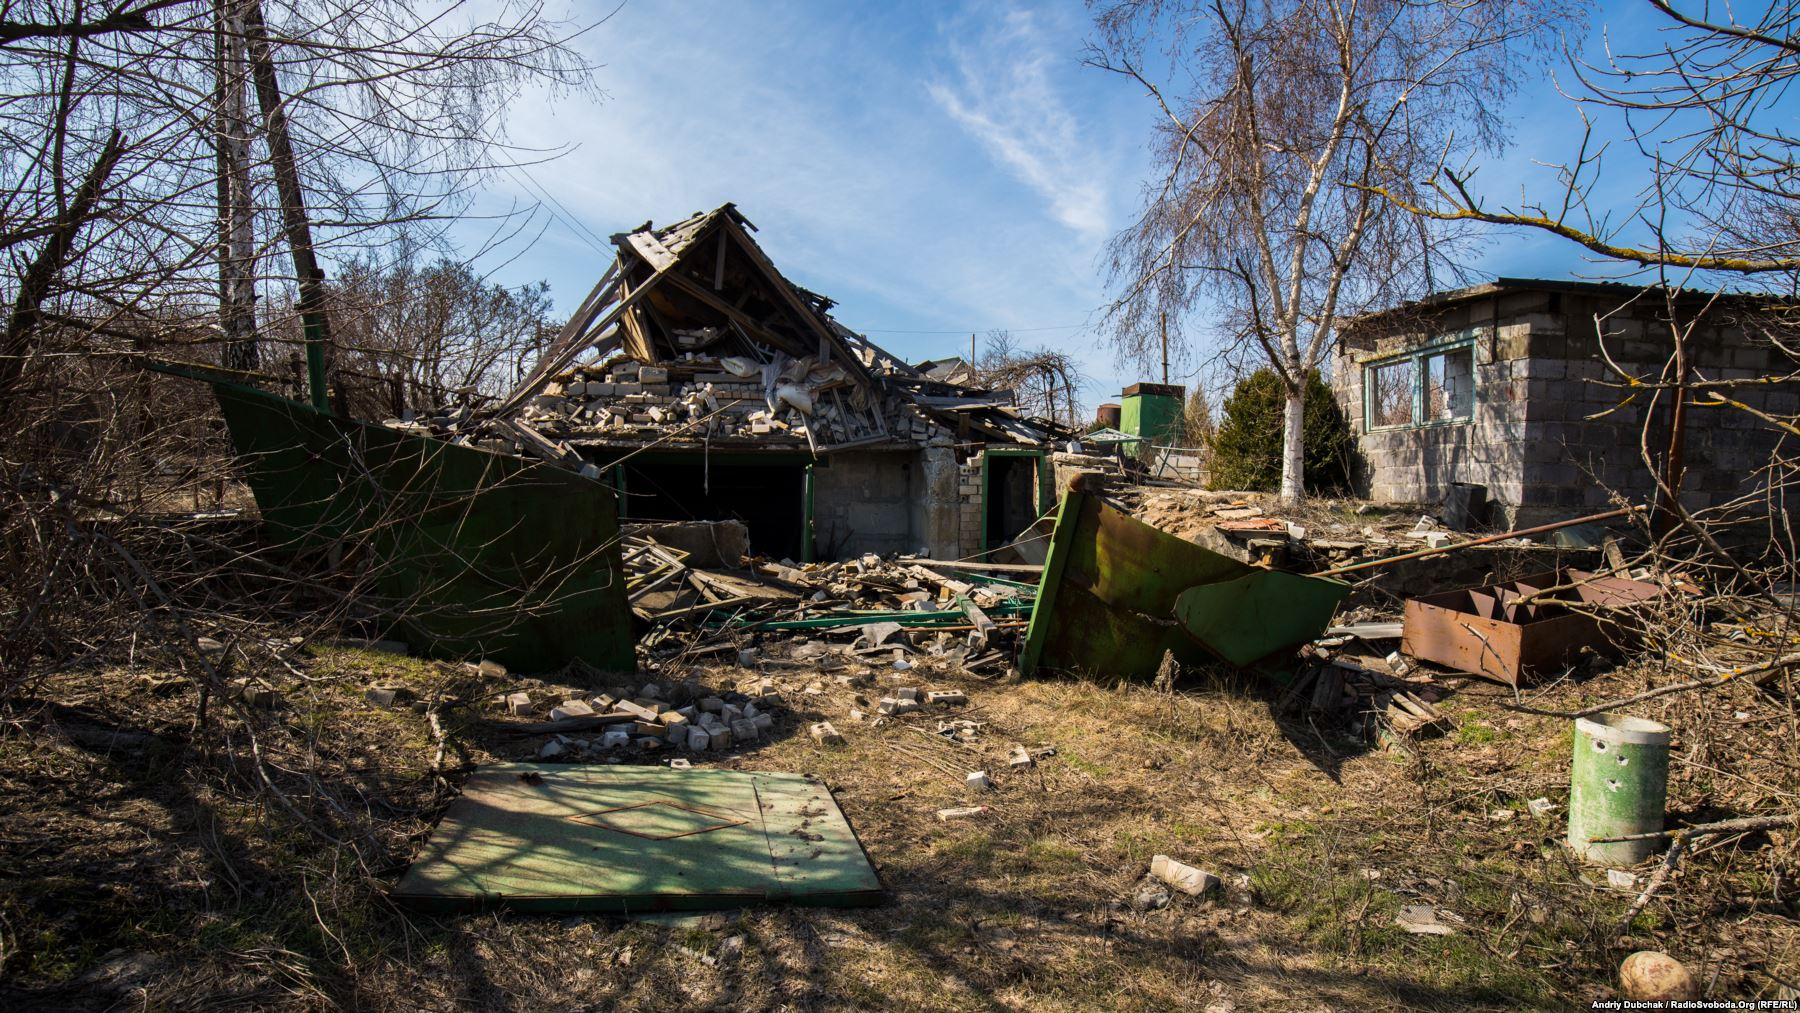 Another destroyed dacha in the village. Photo by: Andriy Dubchak